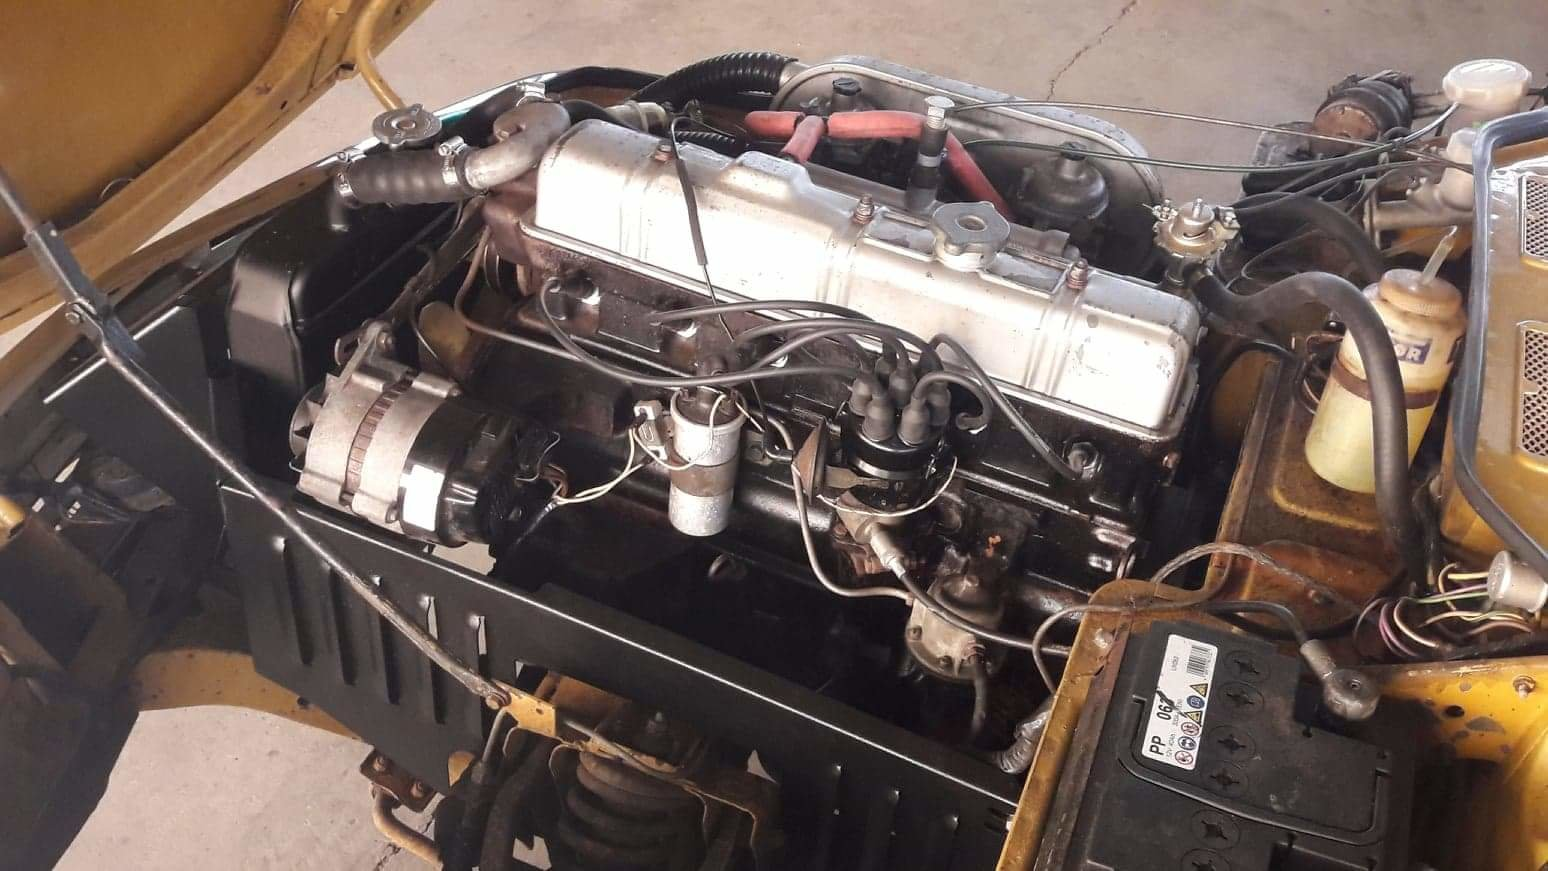 1972 Triumph GT6 Mk3 in great condition For Sale (picture 3 of 6)